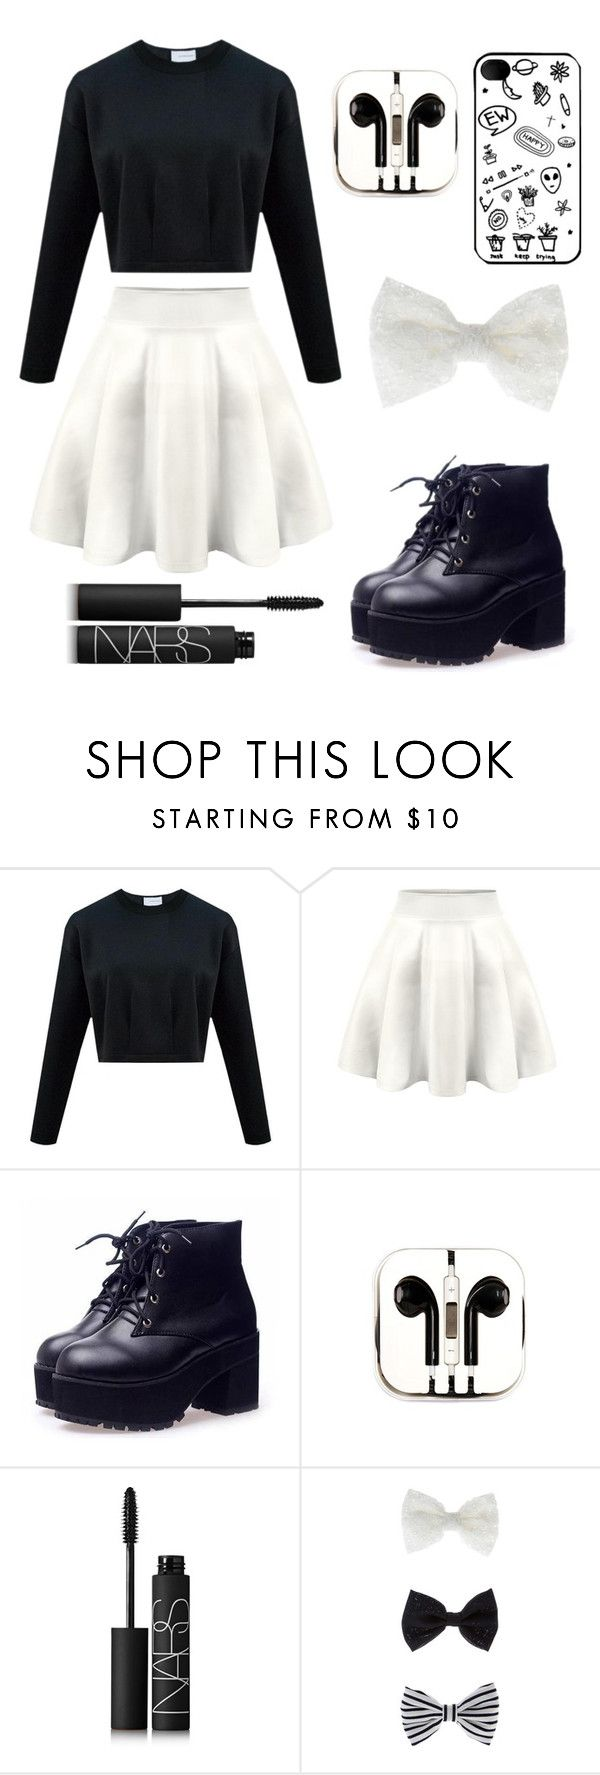 """Black & White Fall/Spring Outfit"" by anaa-xx ❤ liked on Polyvore featuring PhunkeeTree, NARS Cosmetics and Accessorize"